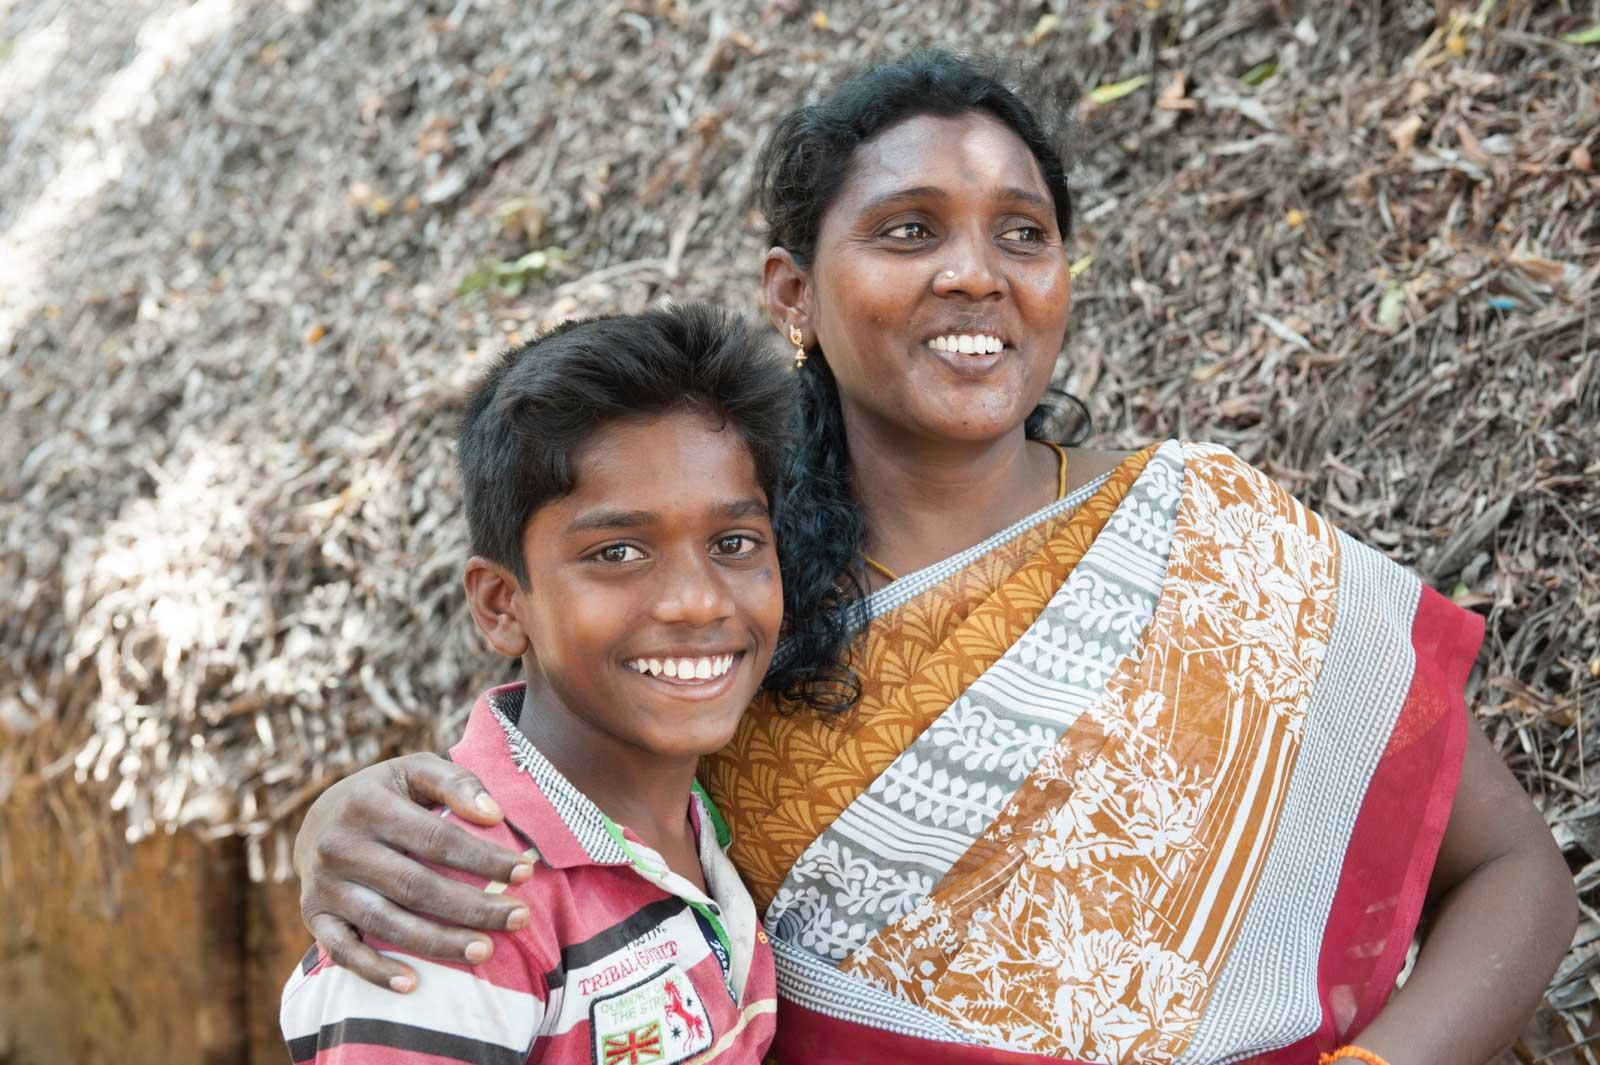 Balachandran with his mother, both look happy